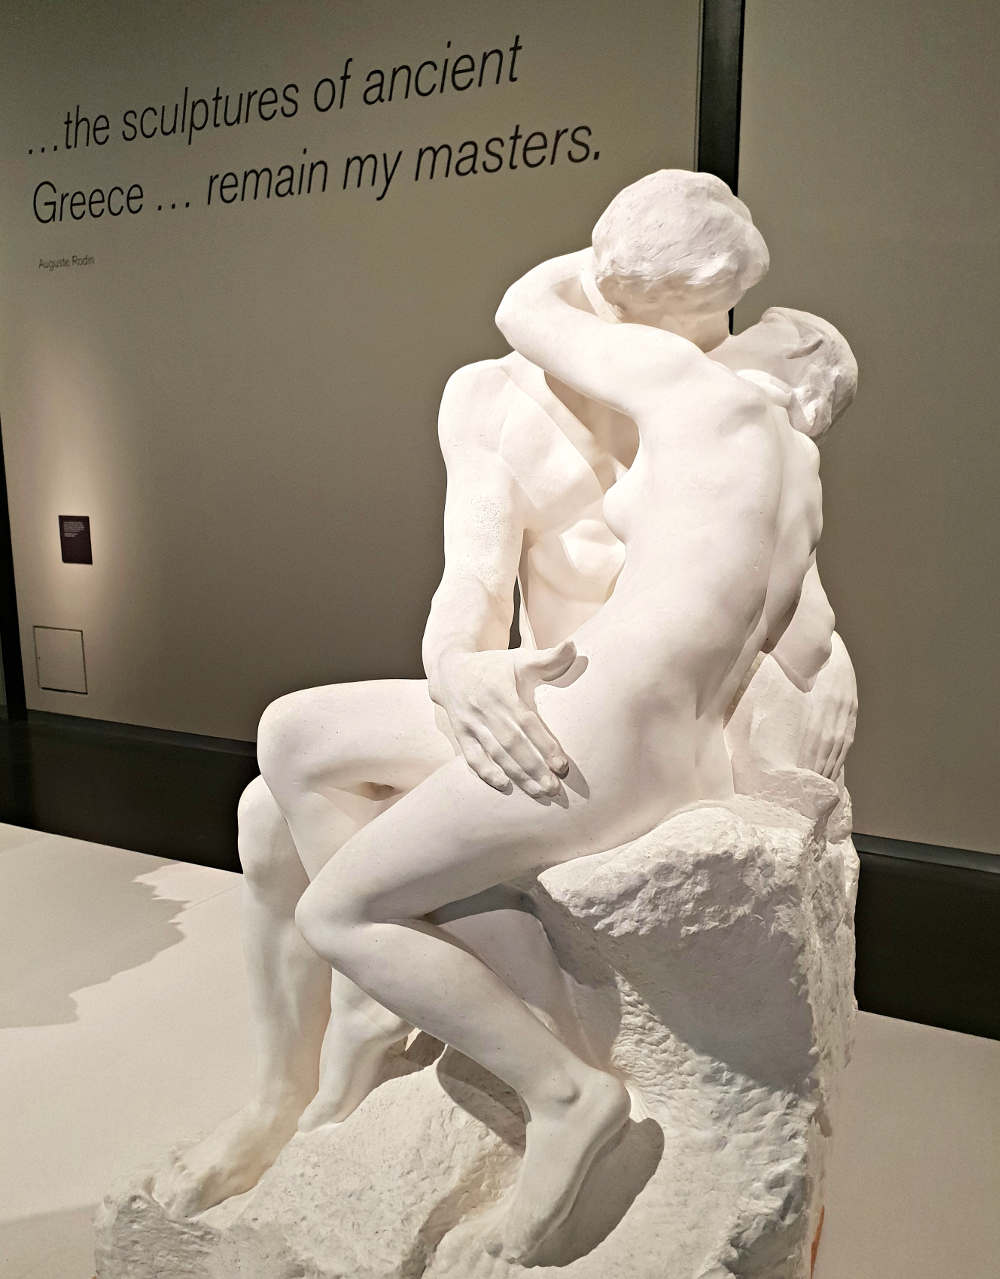 Erotic London, Erotic Art London, Erotic Art in London, Rodin, Tate. The Kiss